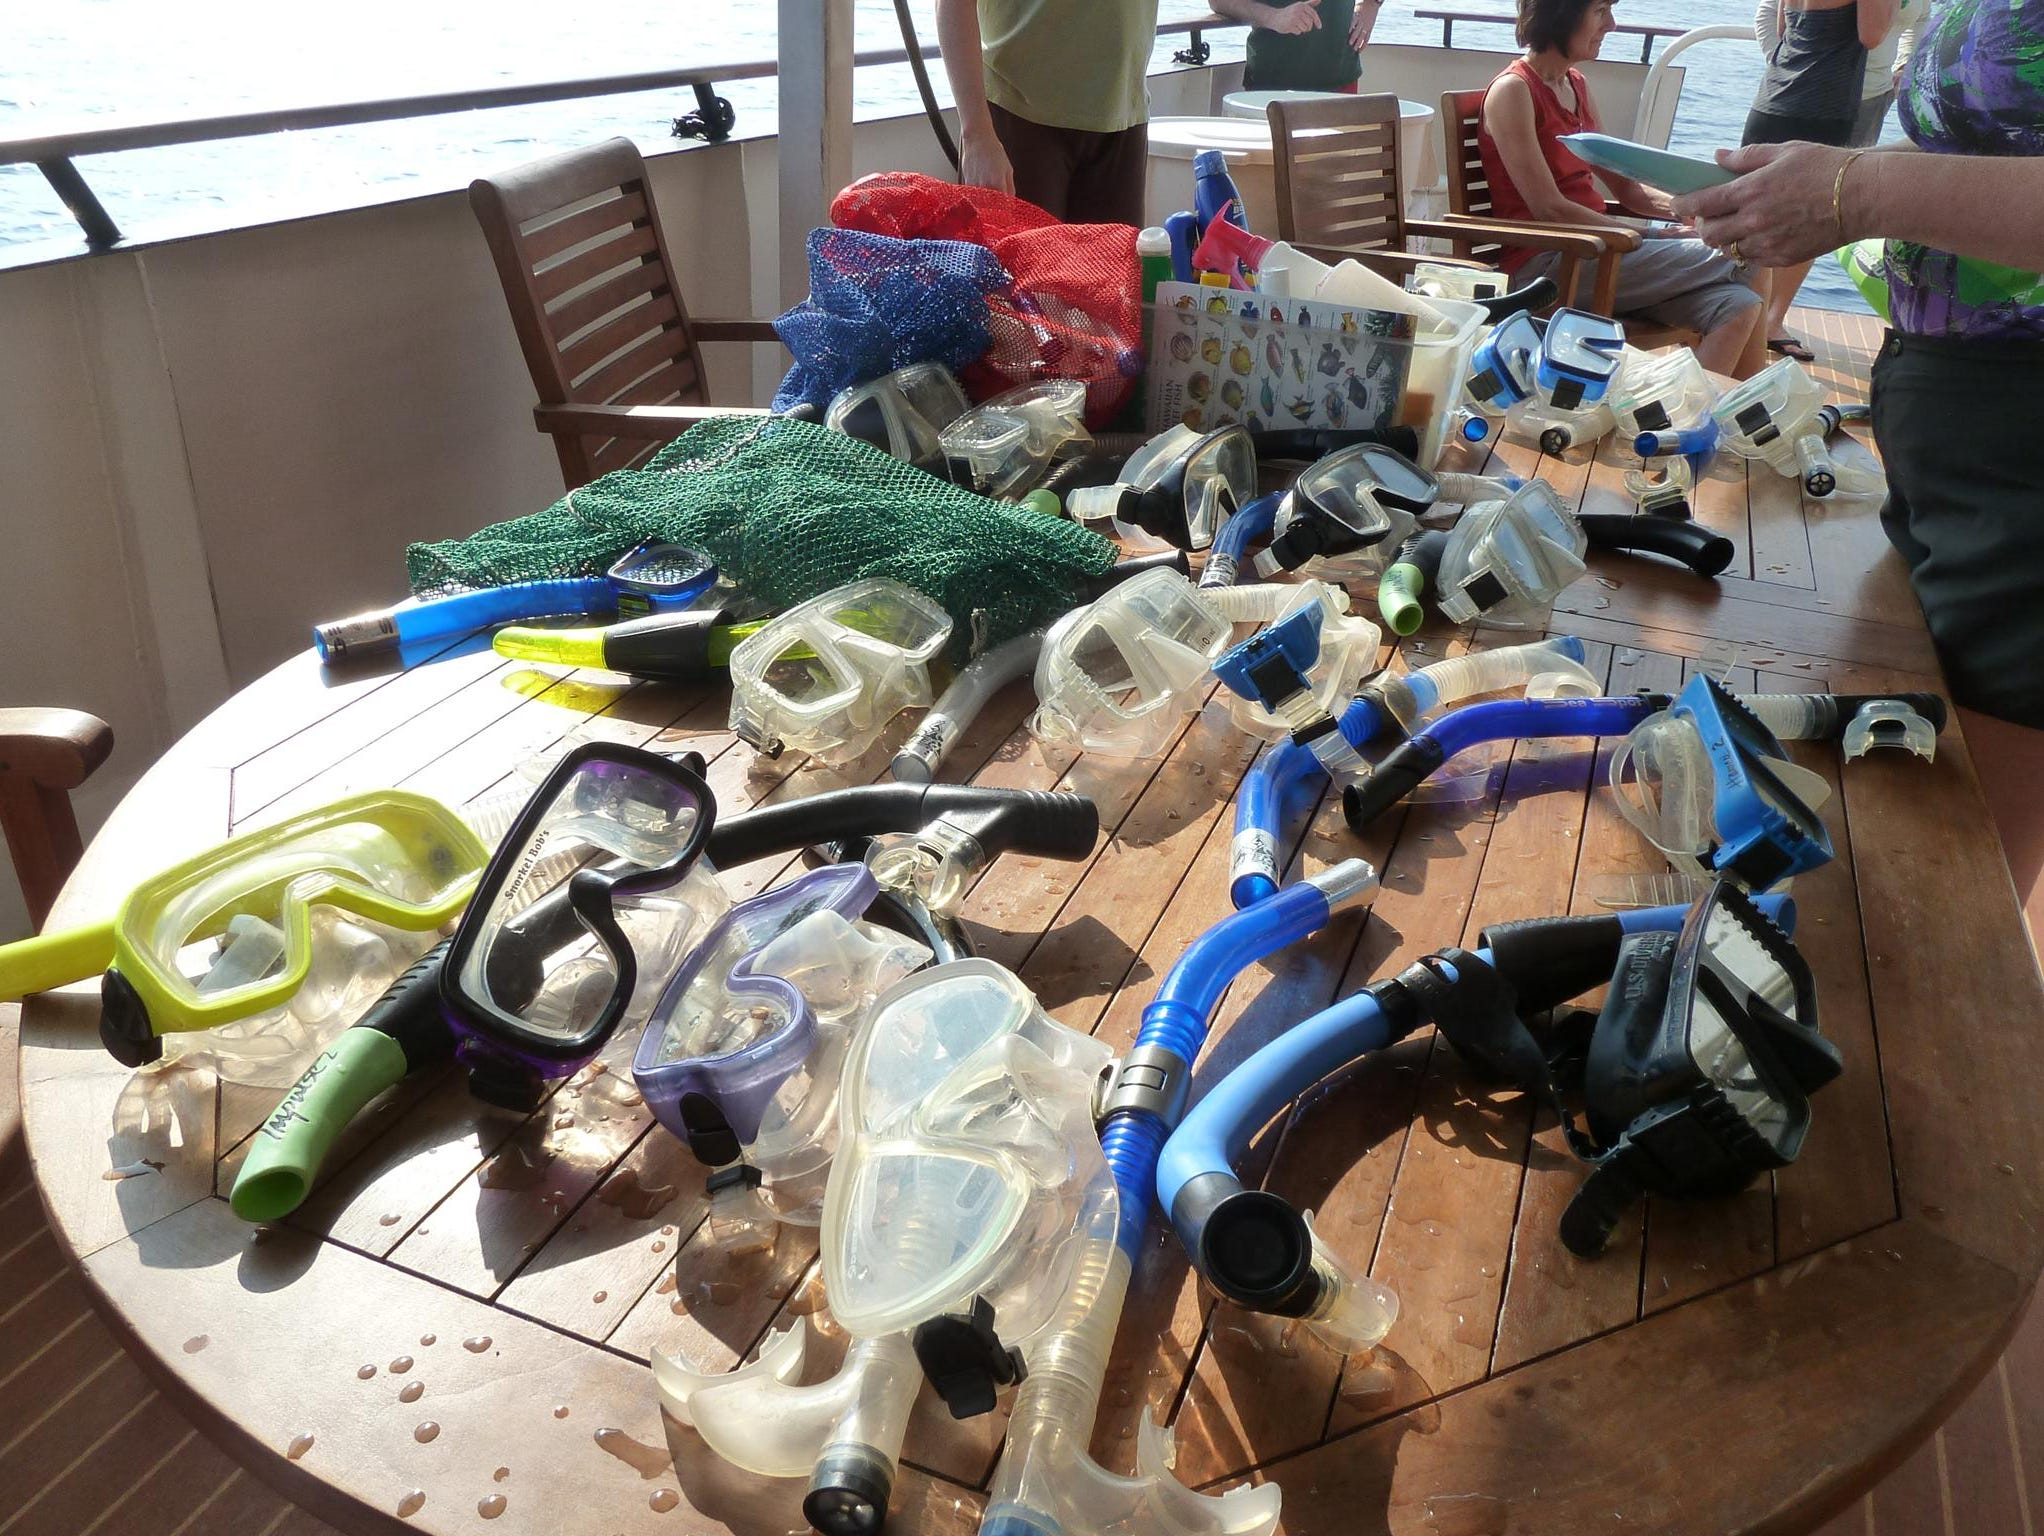 On Hawaiian itineraries, snorkels, masks and fins are provided to all guests.